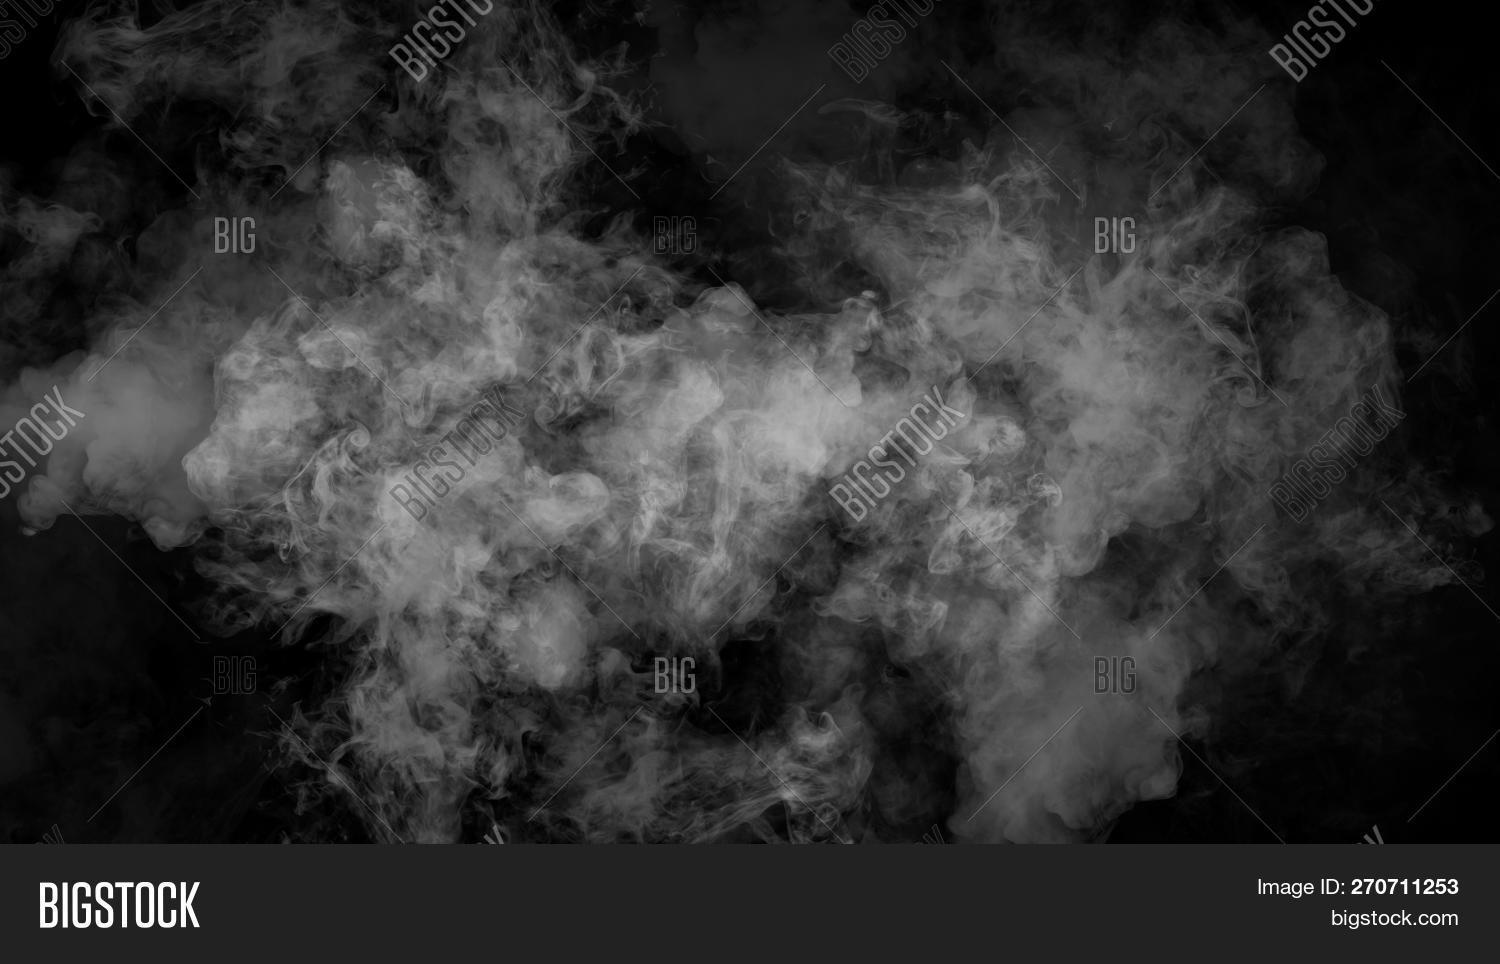 abstract,backdrop,background,black,blue,blur,cloud,dark,decoration,design,dust,dynamic,effect,elegant,flowing,fog,fume,gas,glow,grey,image,interior,isolated,light,magic,mist,misty,motion,nature,nobody,old,pattern,png,smoke,smokey,smoky,space,spotlight,spray,steam,stream,studio,texture,vapor,wallpaper,wave,white